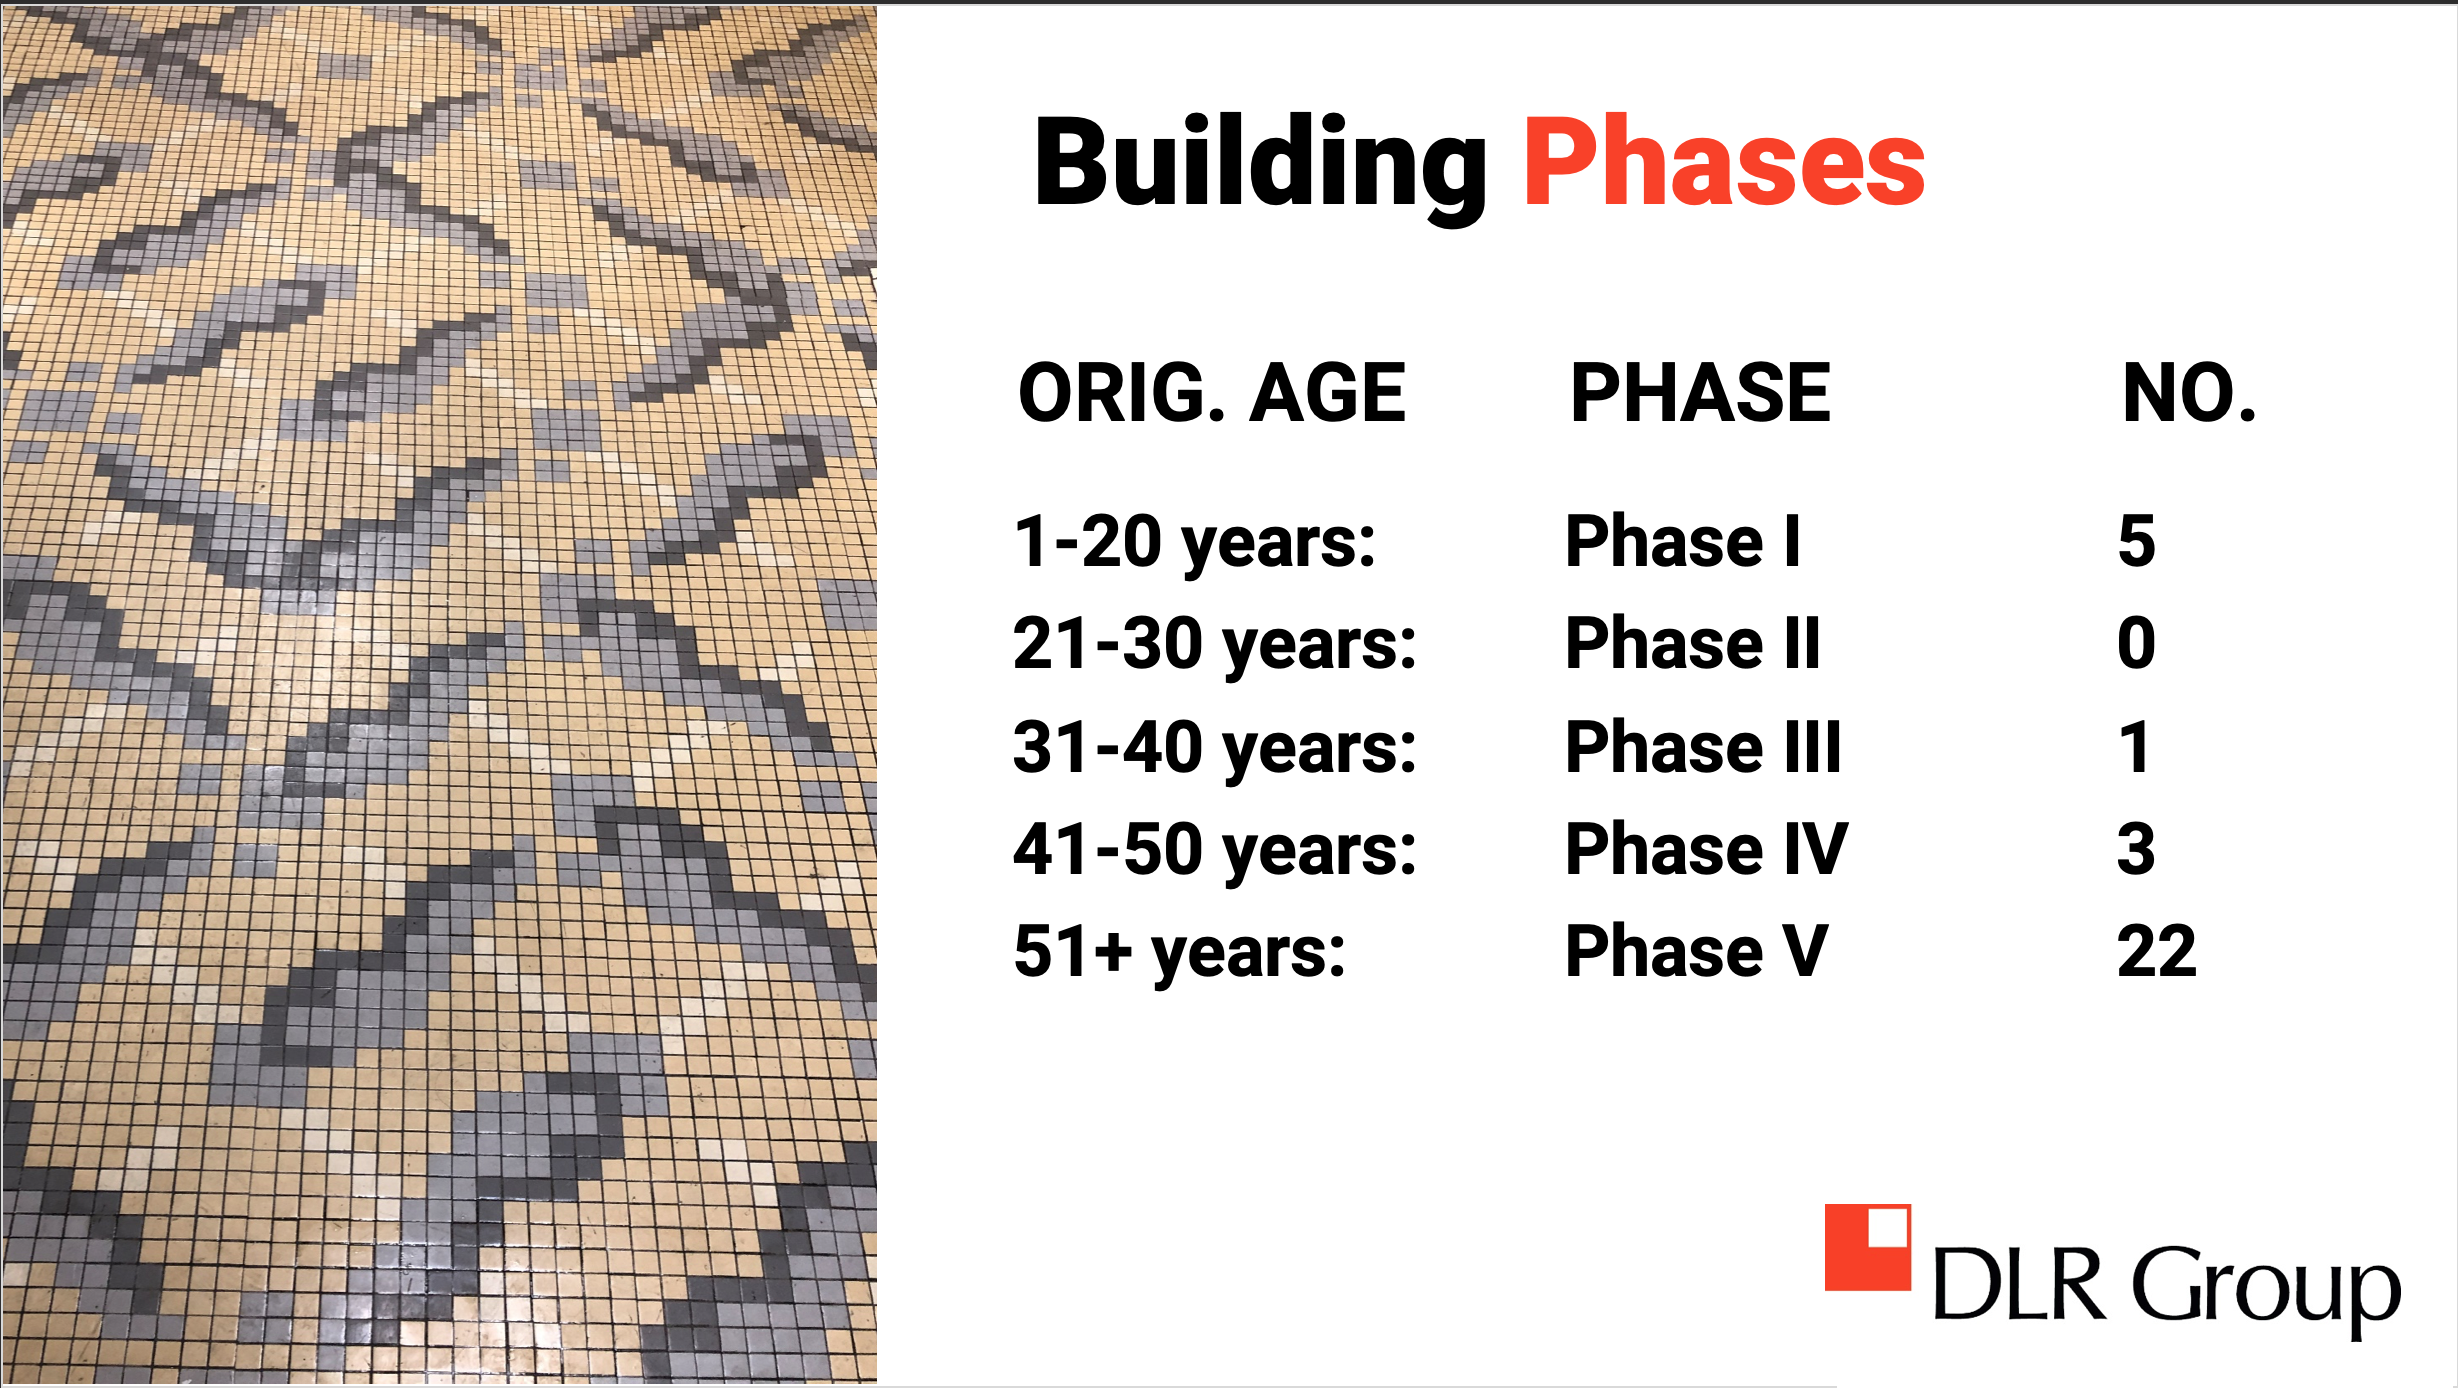 Building Phases